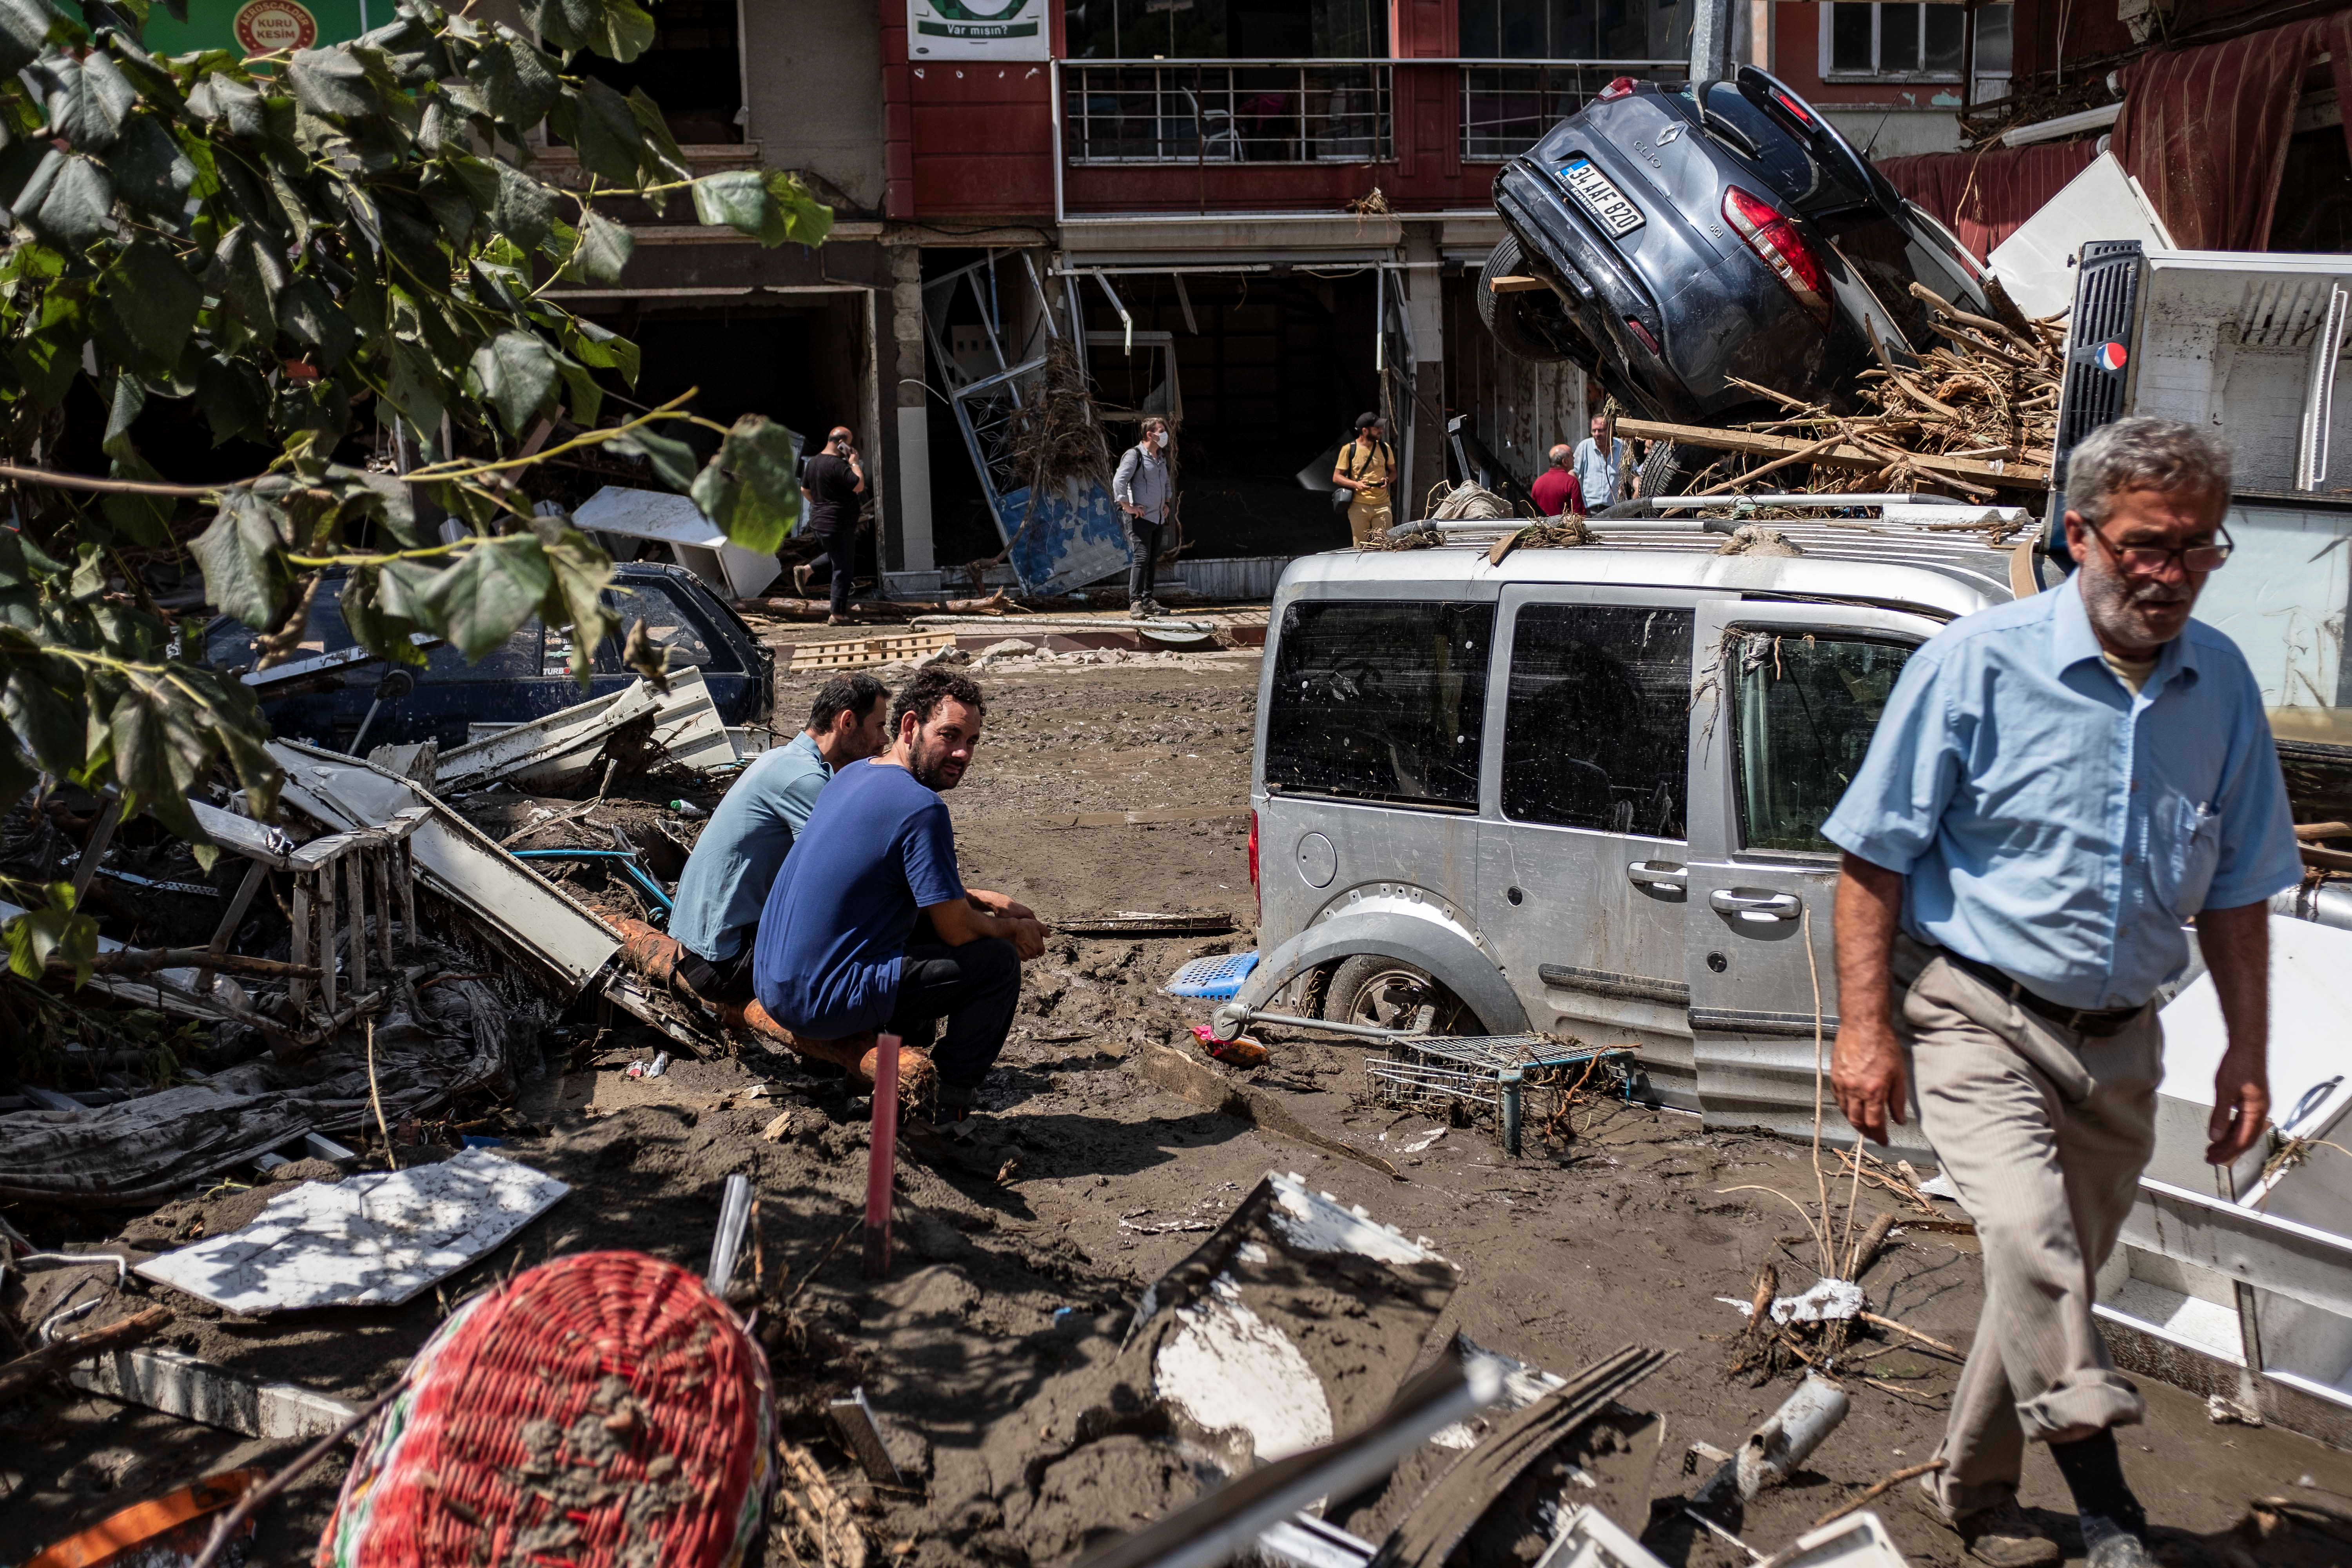 Locals watch as vehicles are seen in the debris of flash floods that swept through towns in the Turkish Black Sea region in Bozkurt, a town in Kastamonu province, Turkey, August 13, 2021. Can Erok/Demiroren Visual Media via REUTERS ATTENTION EDITORS - THIS PICTURE WAS PROVIDED BY A THIRD PARTY. NO RESALES. NO ARCHIVE. TURKEY OUT. NO COMMERCIAL OR EDITORIAL SALES IN TURKEY.